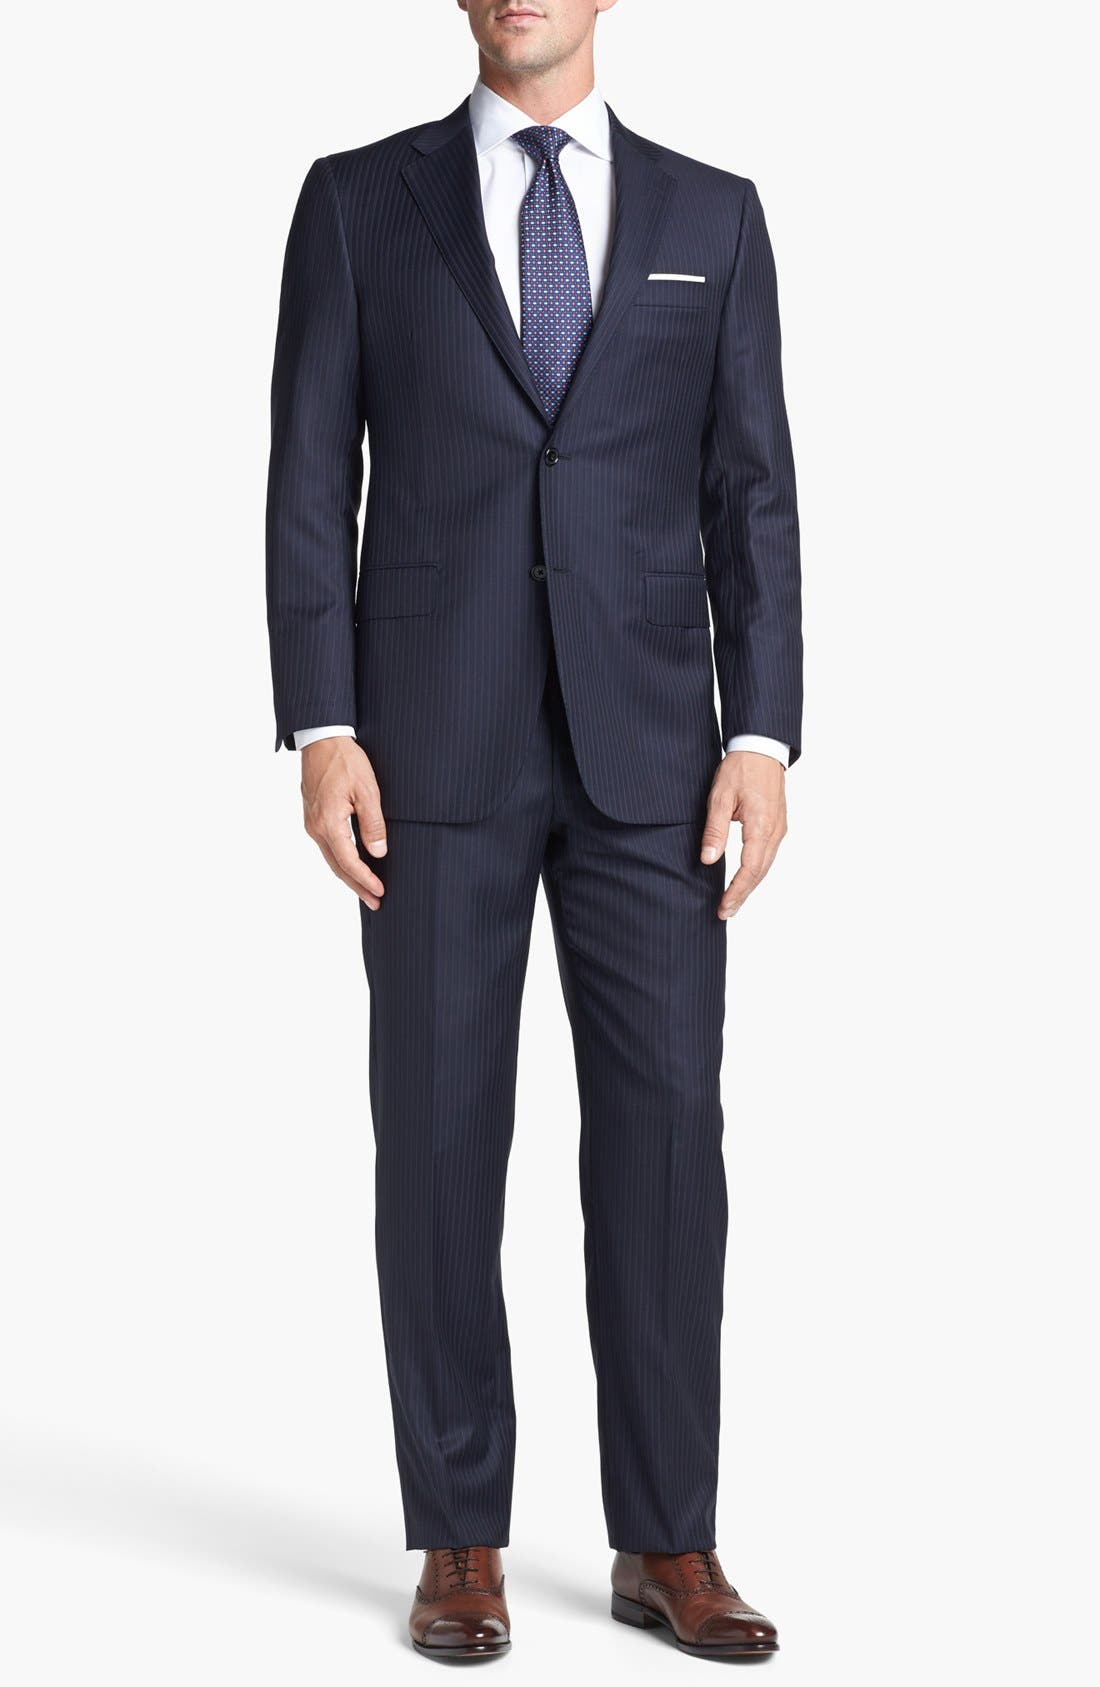 Alternate Image 1 Selected - Hickey Freeman 'B Series' Classic Fit Stripe Suit